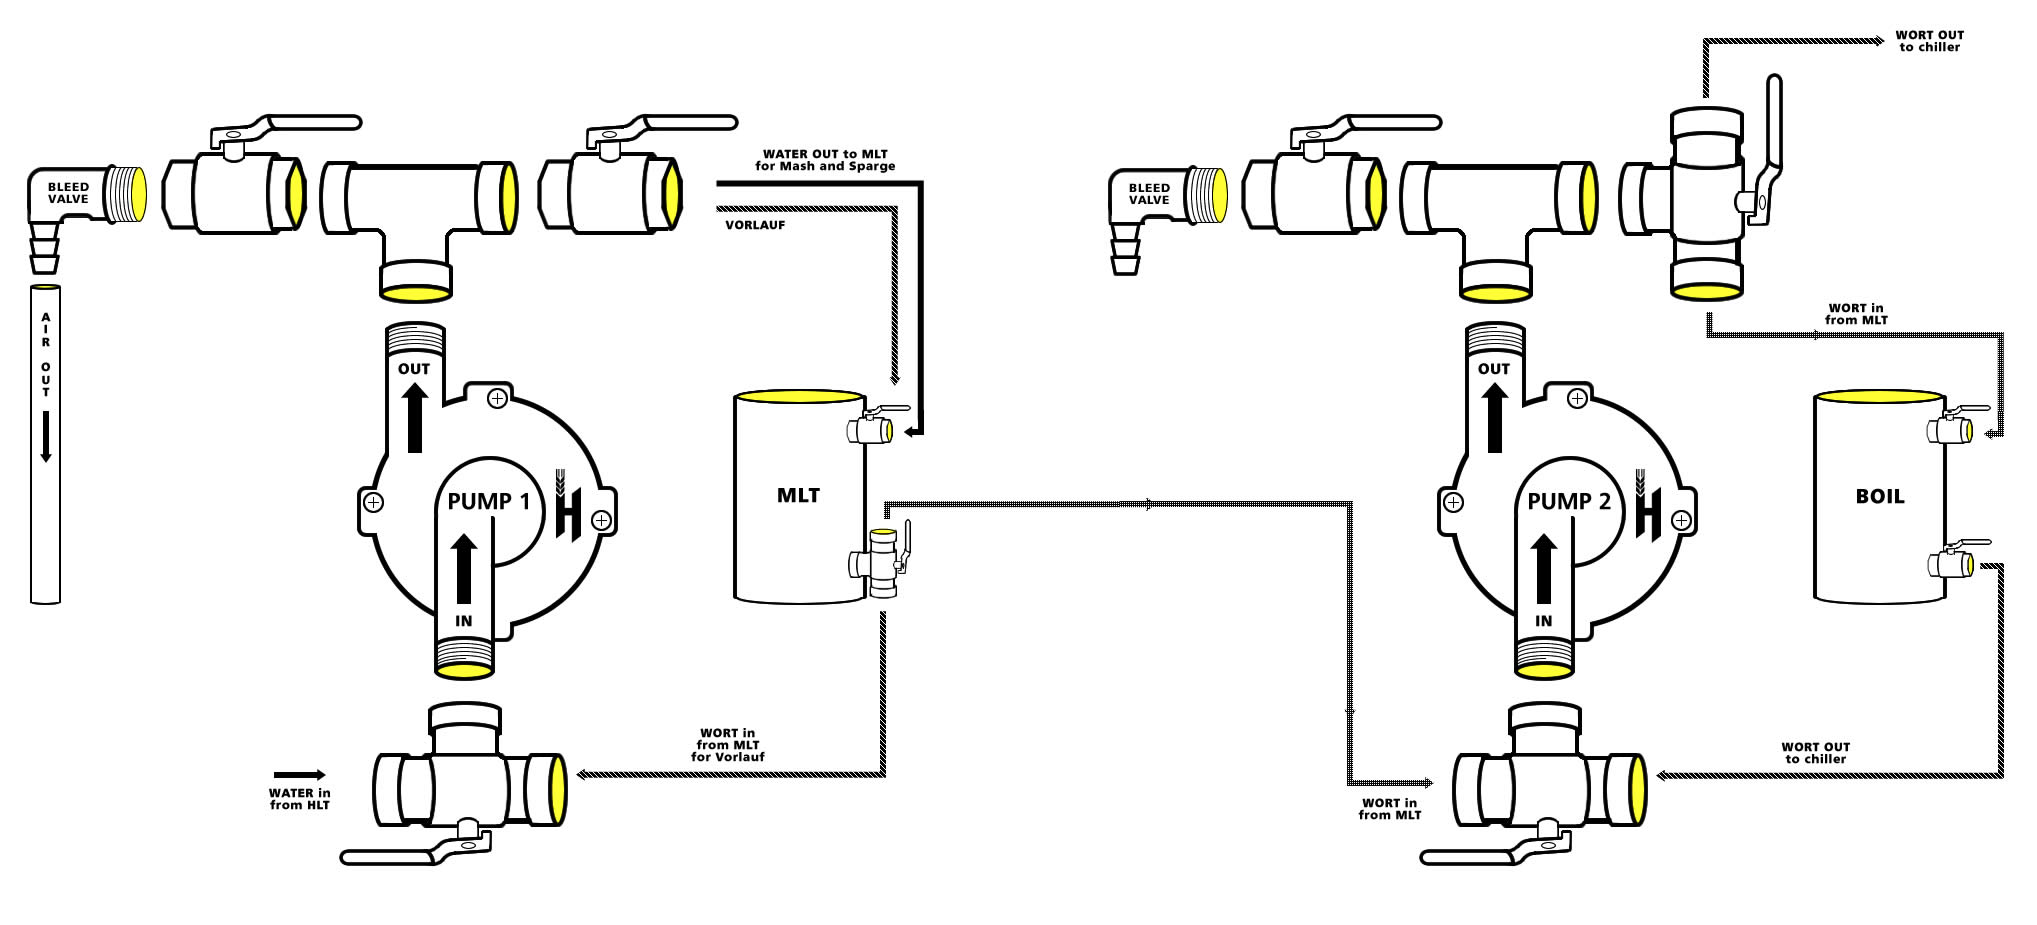 advanced-pump-setup  Way Ball Valve Schematic on 3 way air valve schematic, butterfly valve schematic, globe valve schematic, control valve schematic, 4-way valve schematic, three-way valve schematic, pvc union schematic, water valve schematic, diaphragm valve schematic, 3-way control valves, needle valve schematic, 5-way valve schematic, gate valve schematic, plug valve schematic, pressure relief valve schematic, 3-way switch schematic, 3-way rollers, check valve schematic,